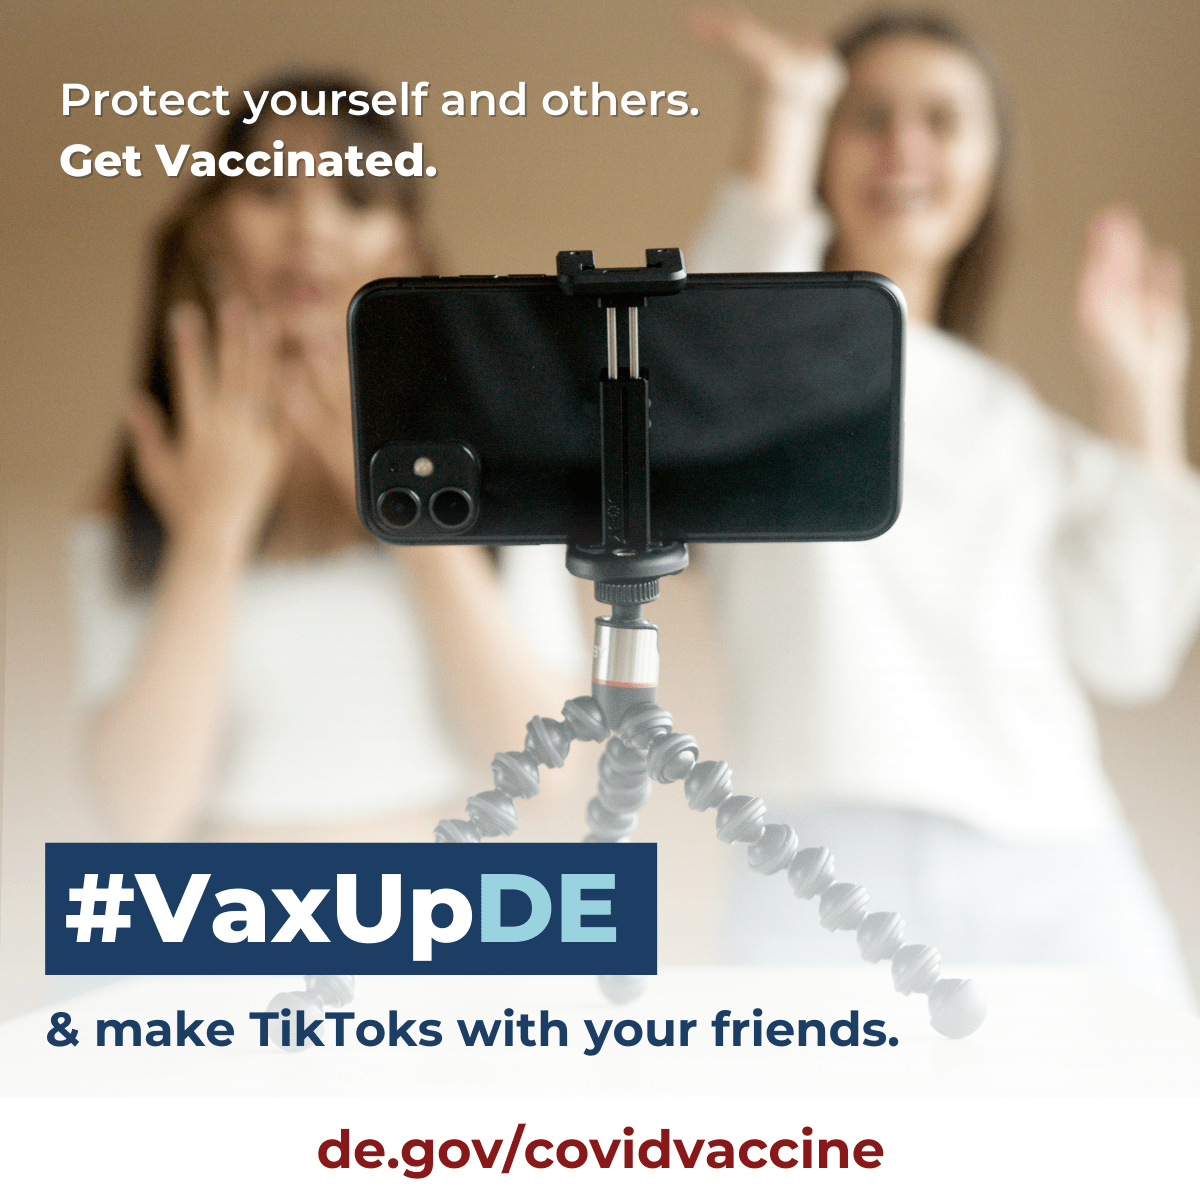 VaxUpDE. Protect yourself and others. Get Vaccinated. Teens create a video together.